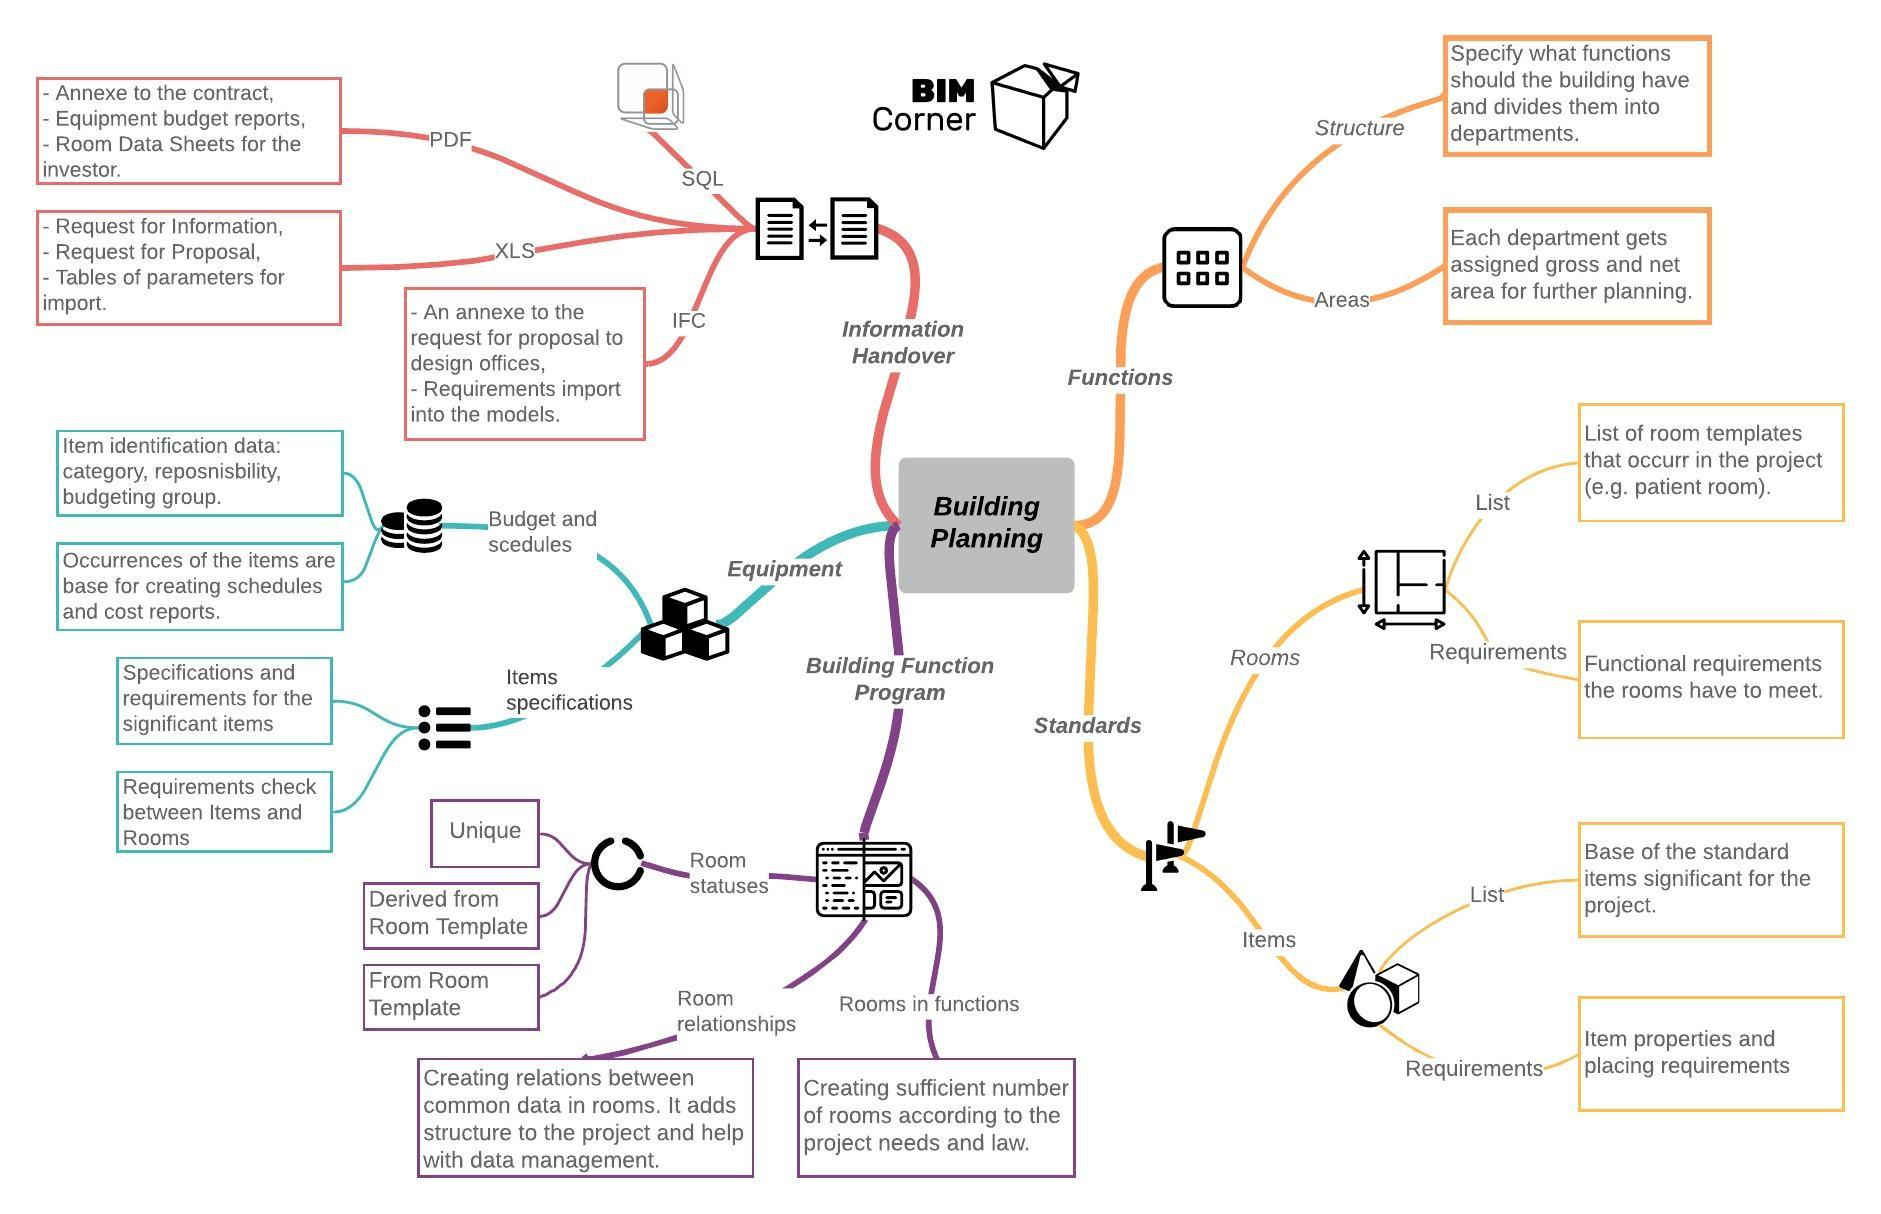 Building planning and building program mind map